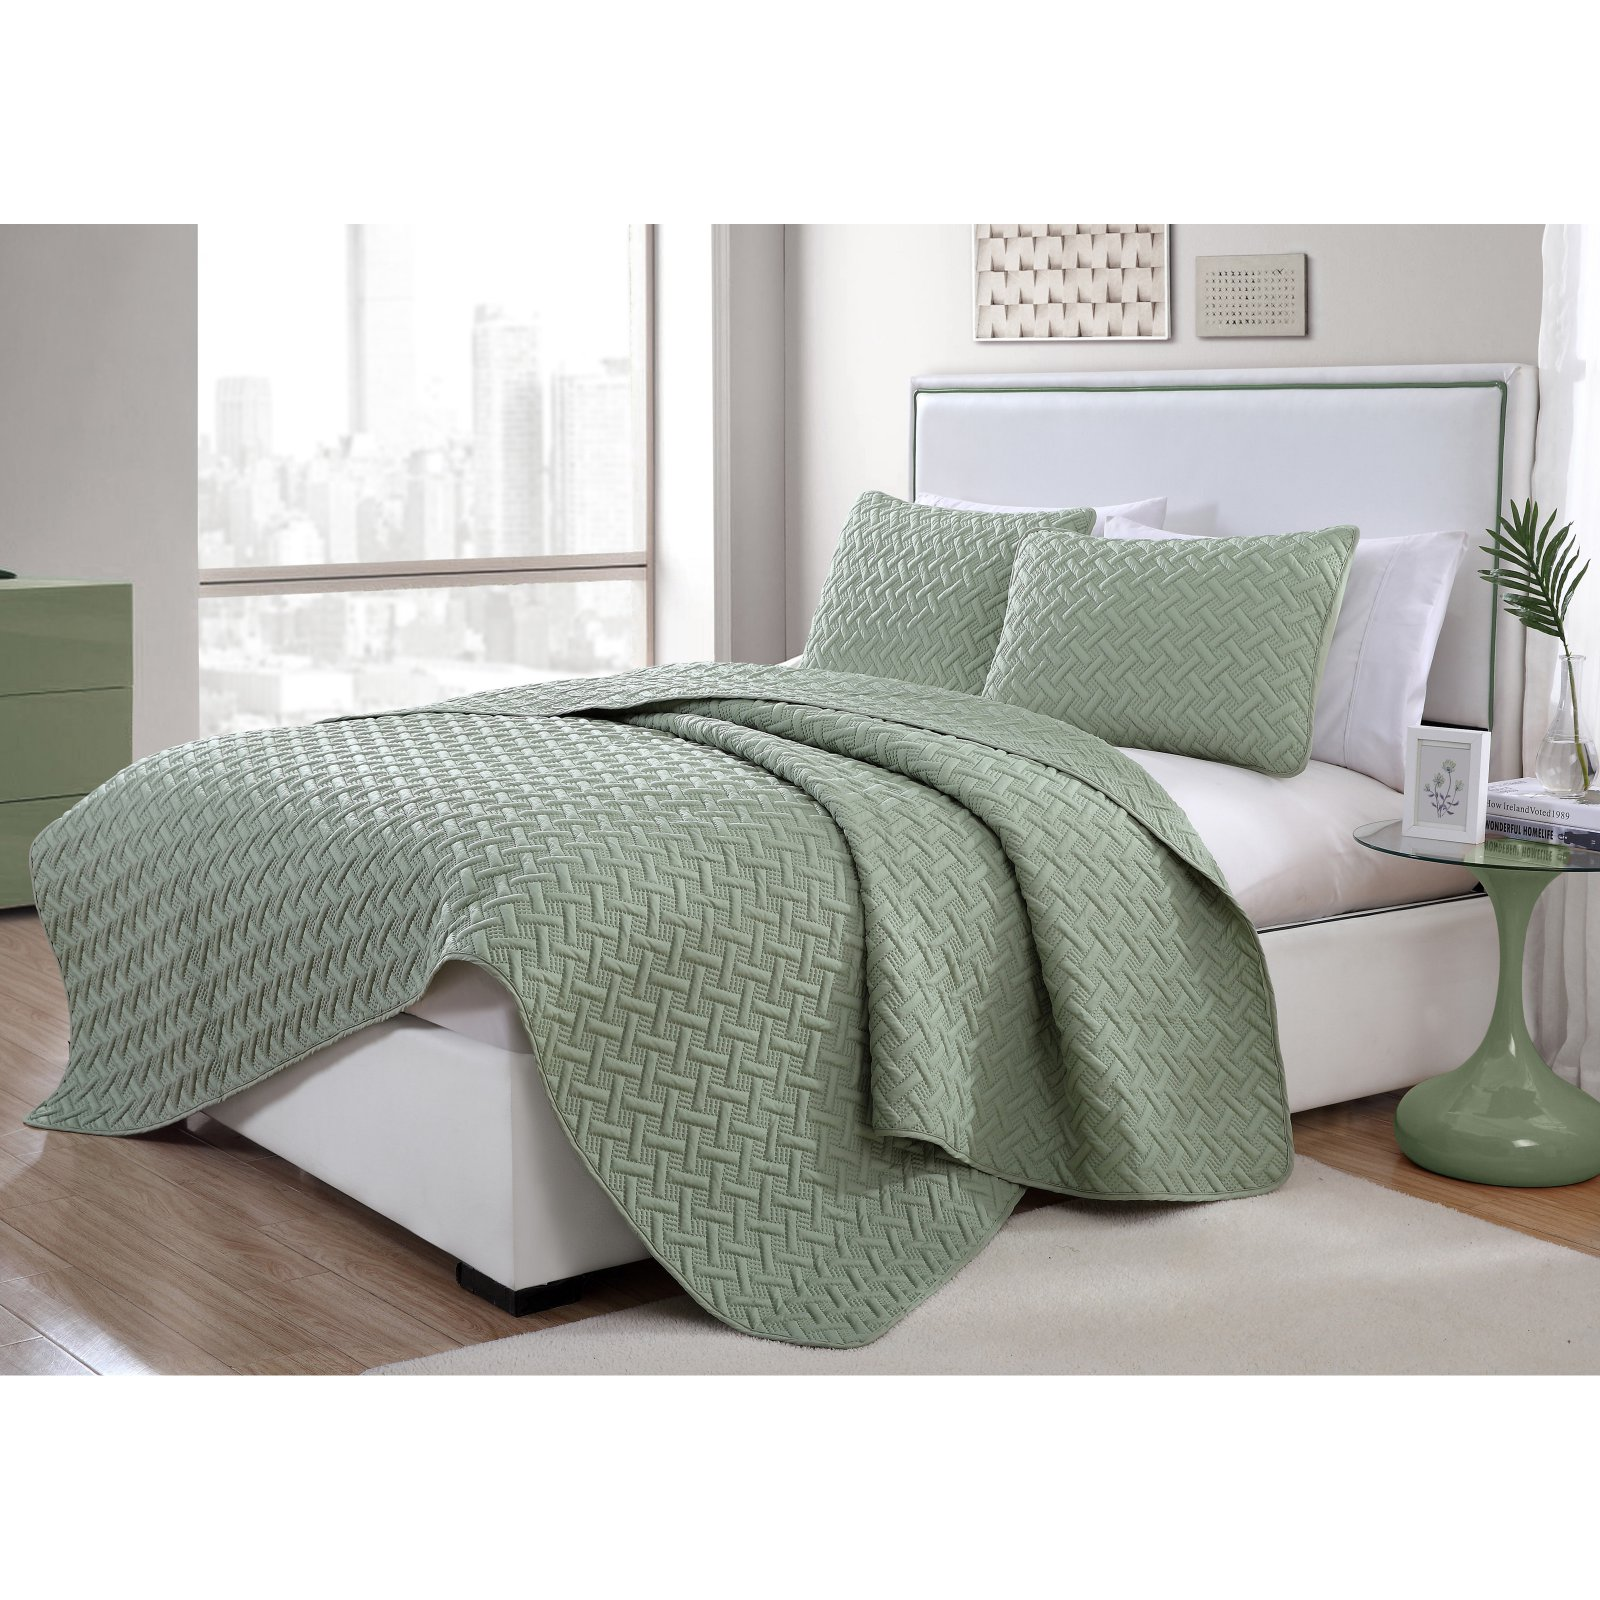 Nina 2/3 Piece Textured Embossed Quilt Set, Multiple Sizes and Colors Available